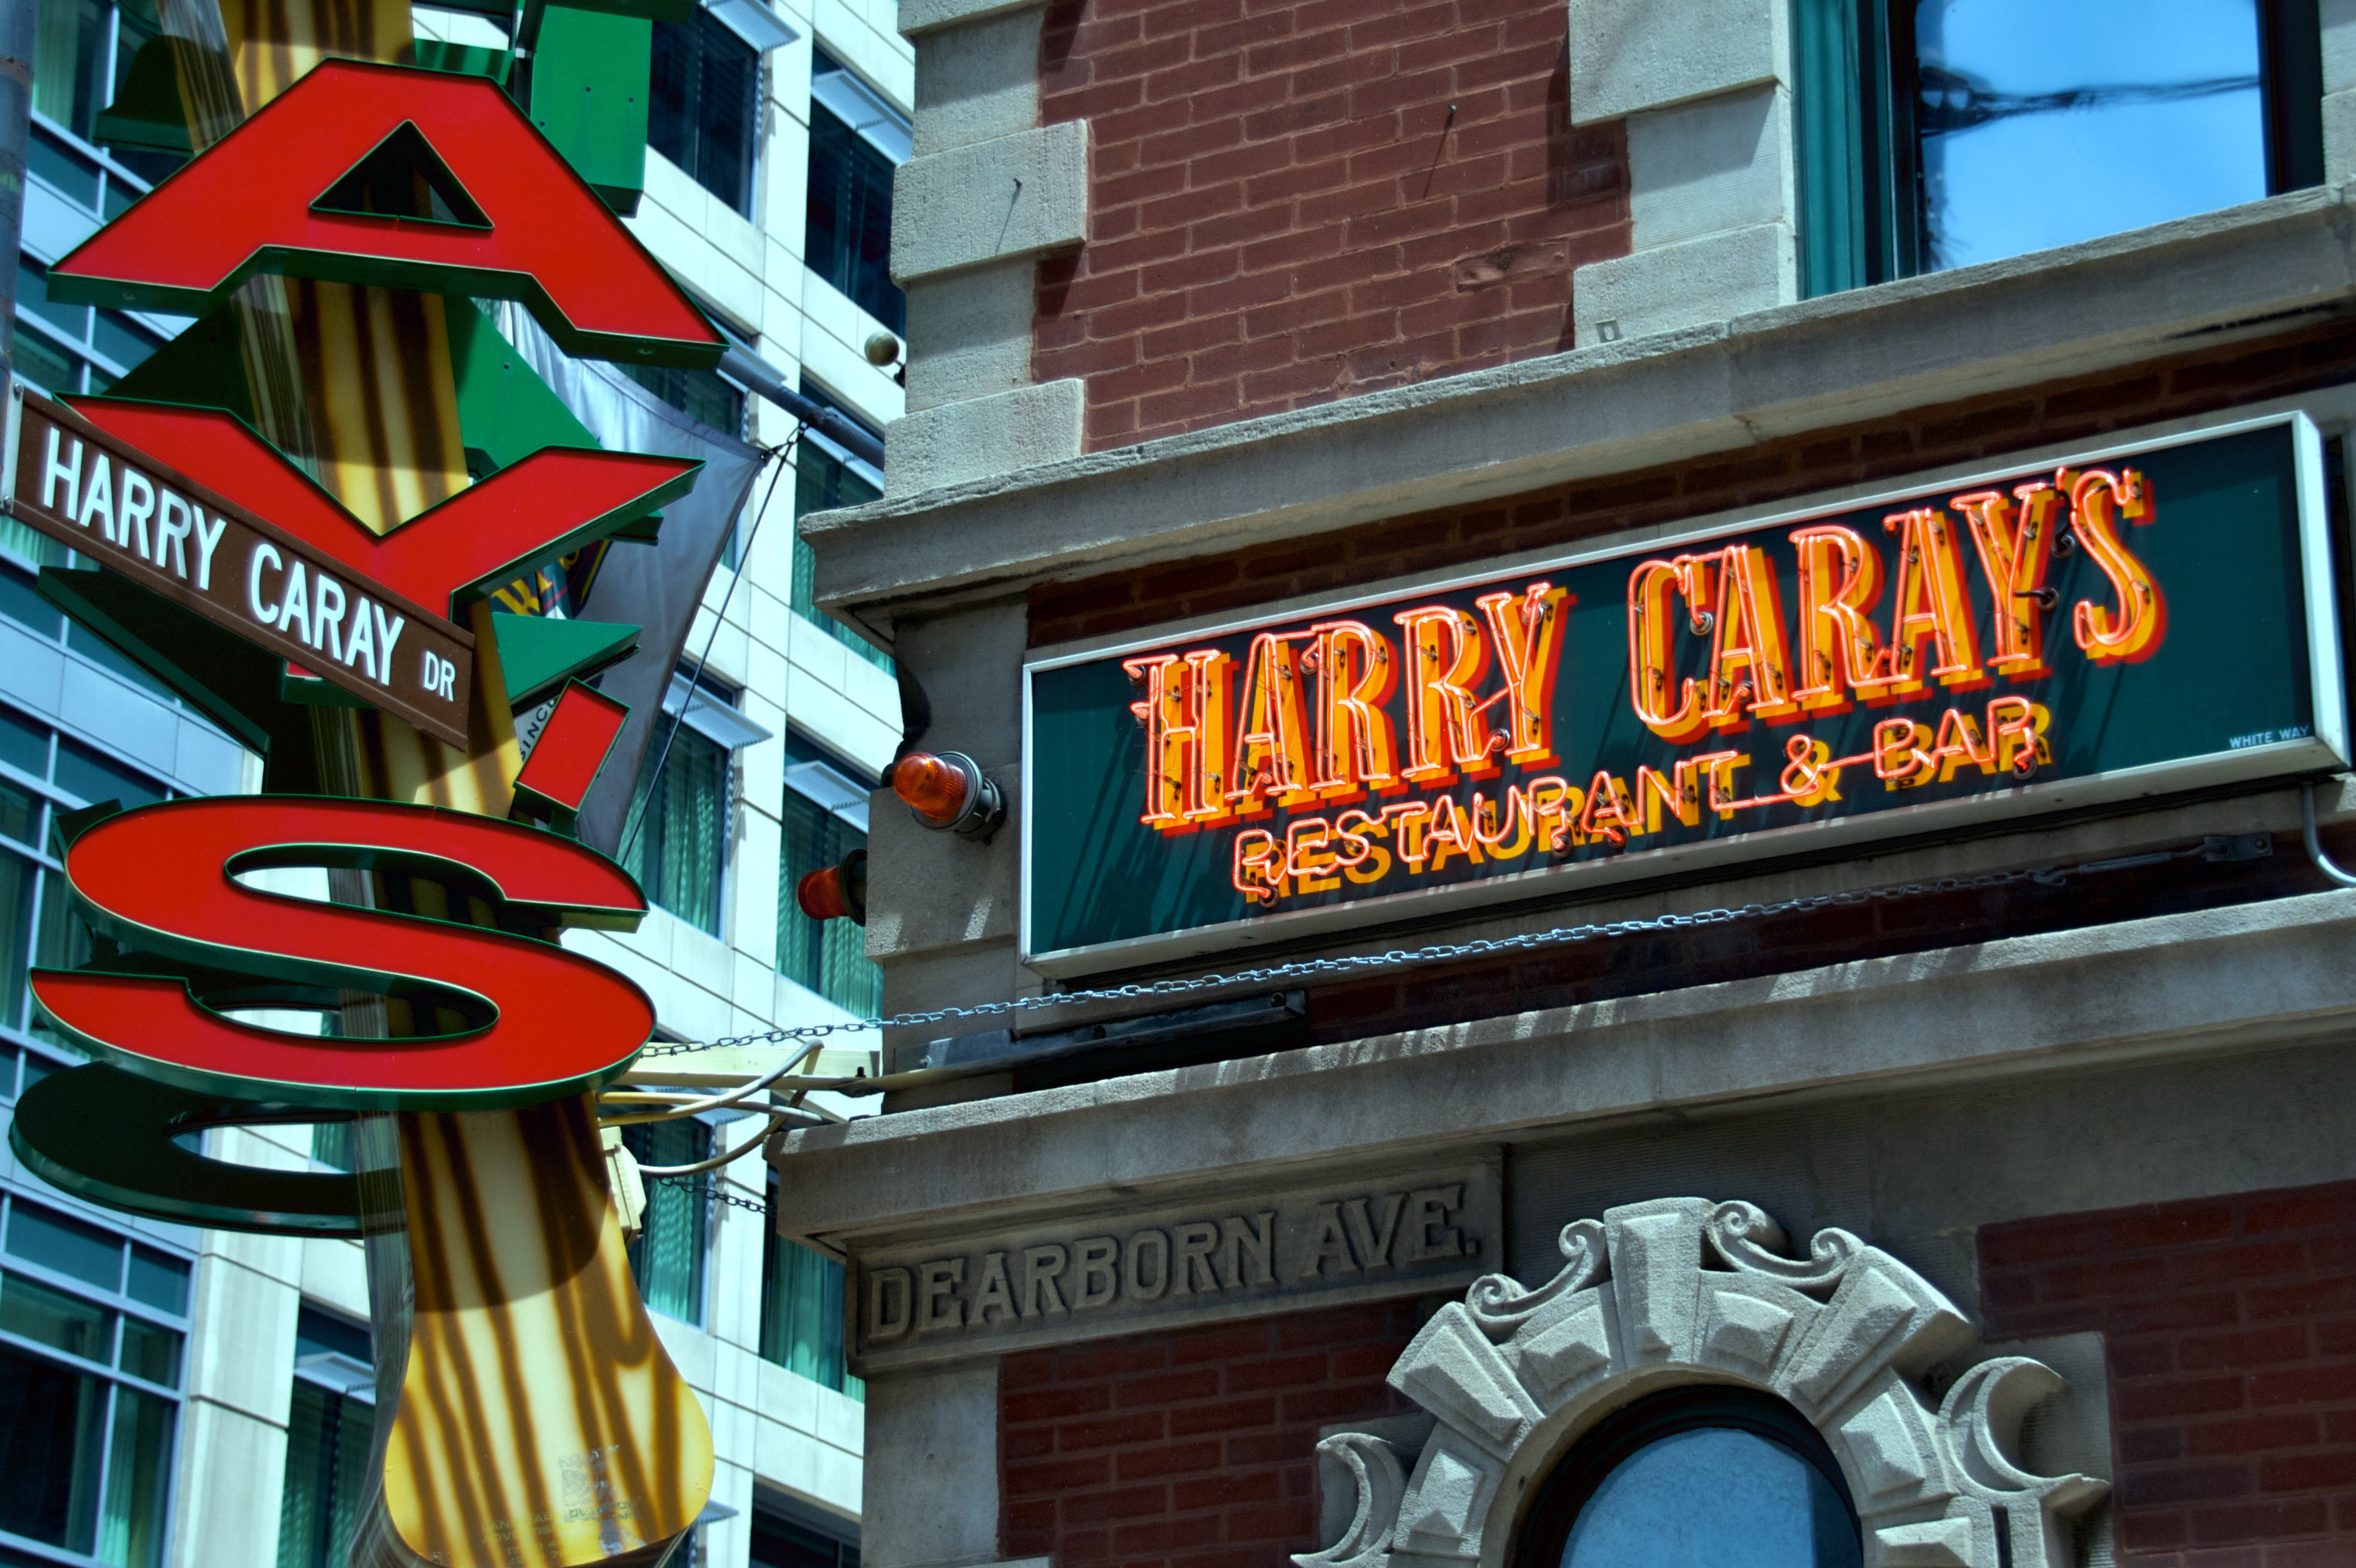 Sandwich Month Harry Caray's